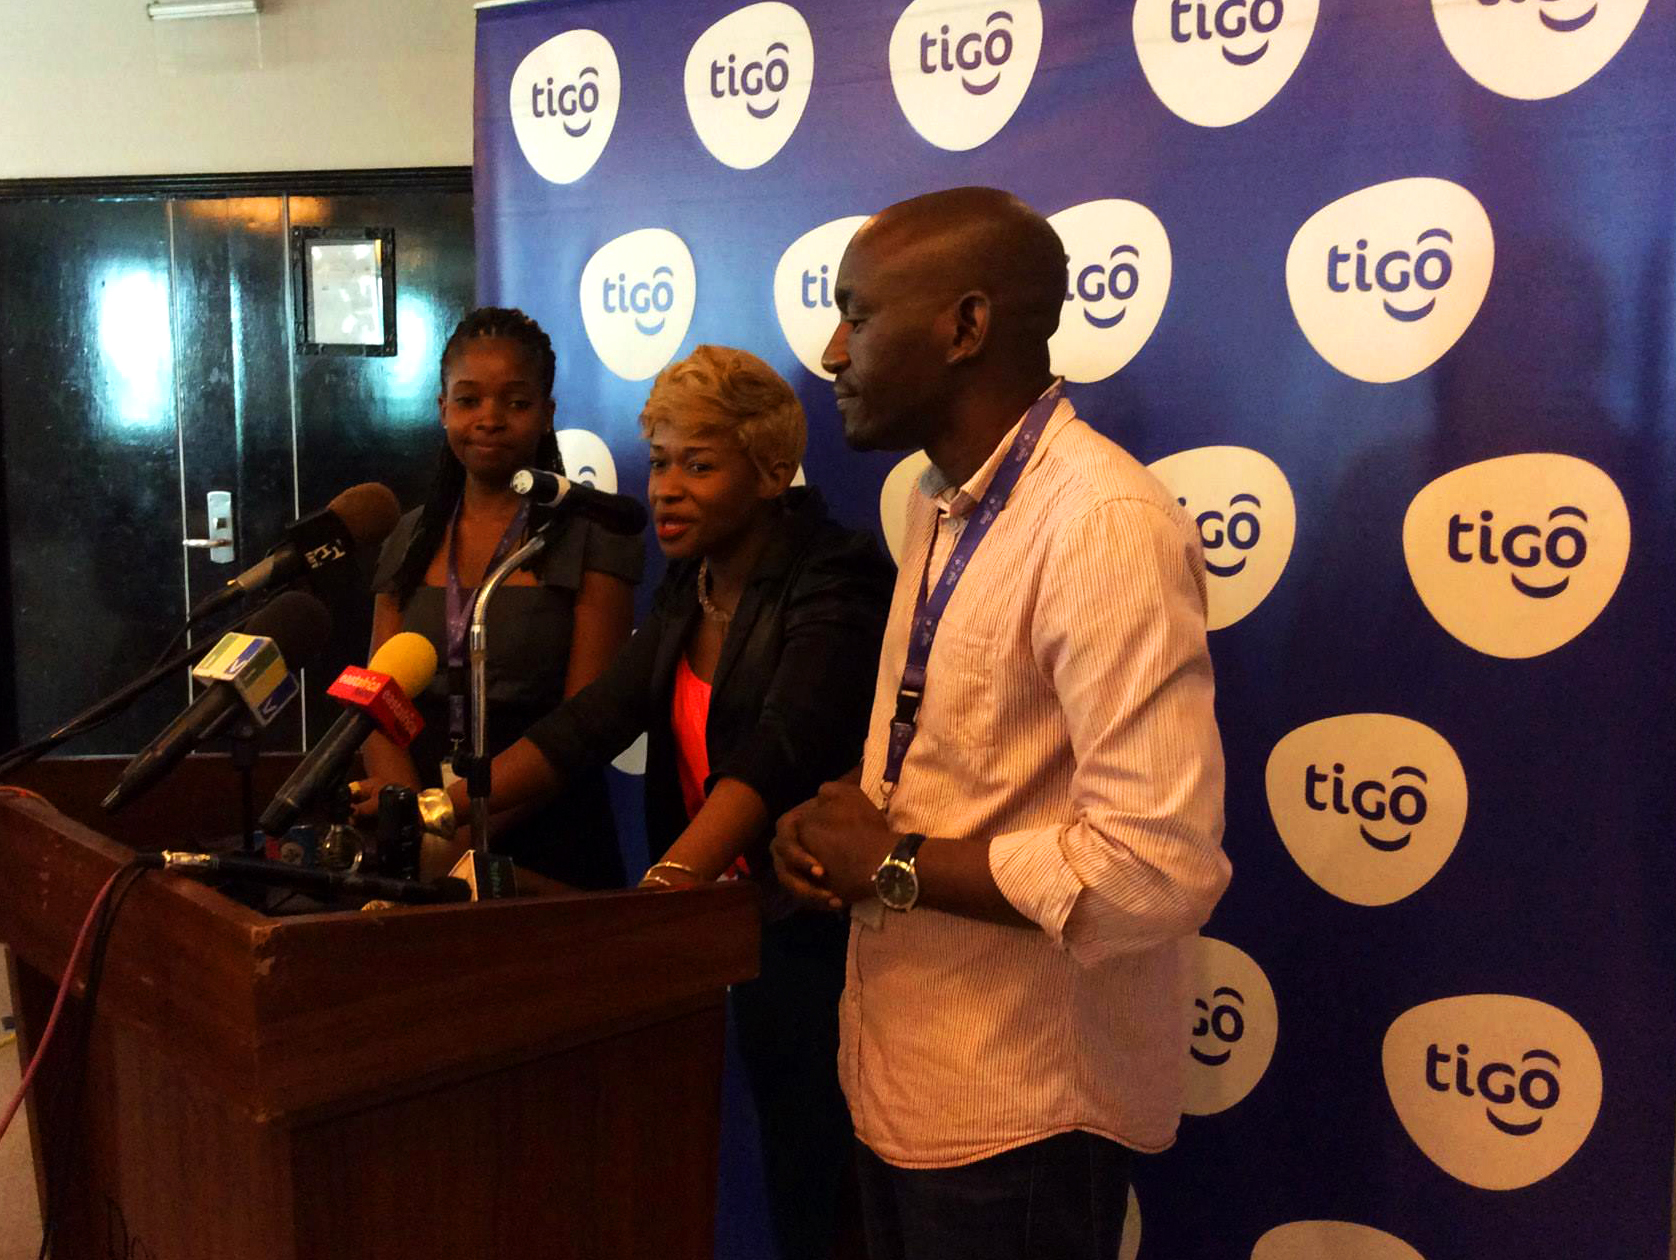 © Tigo Tanzania. Music artist Linah Sanga (centre) with Tigo representatives at the launch event in Dar es Salaam on 13 January 2015.